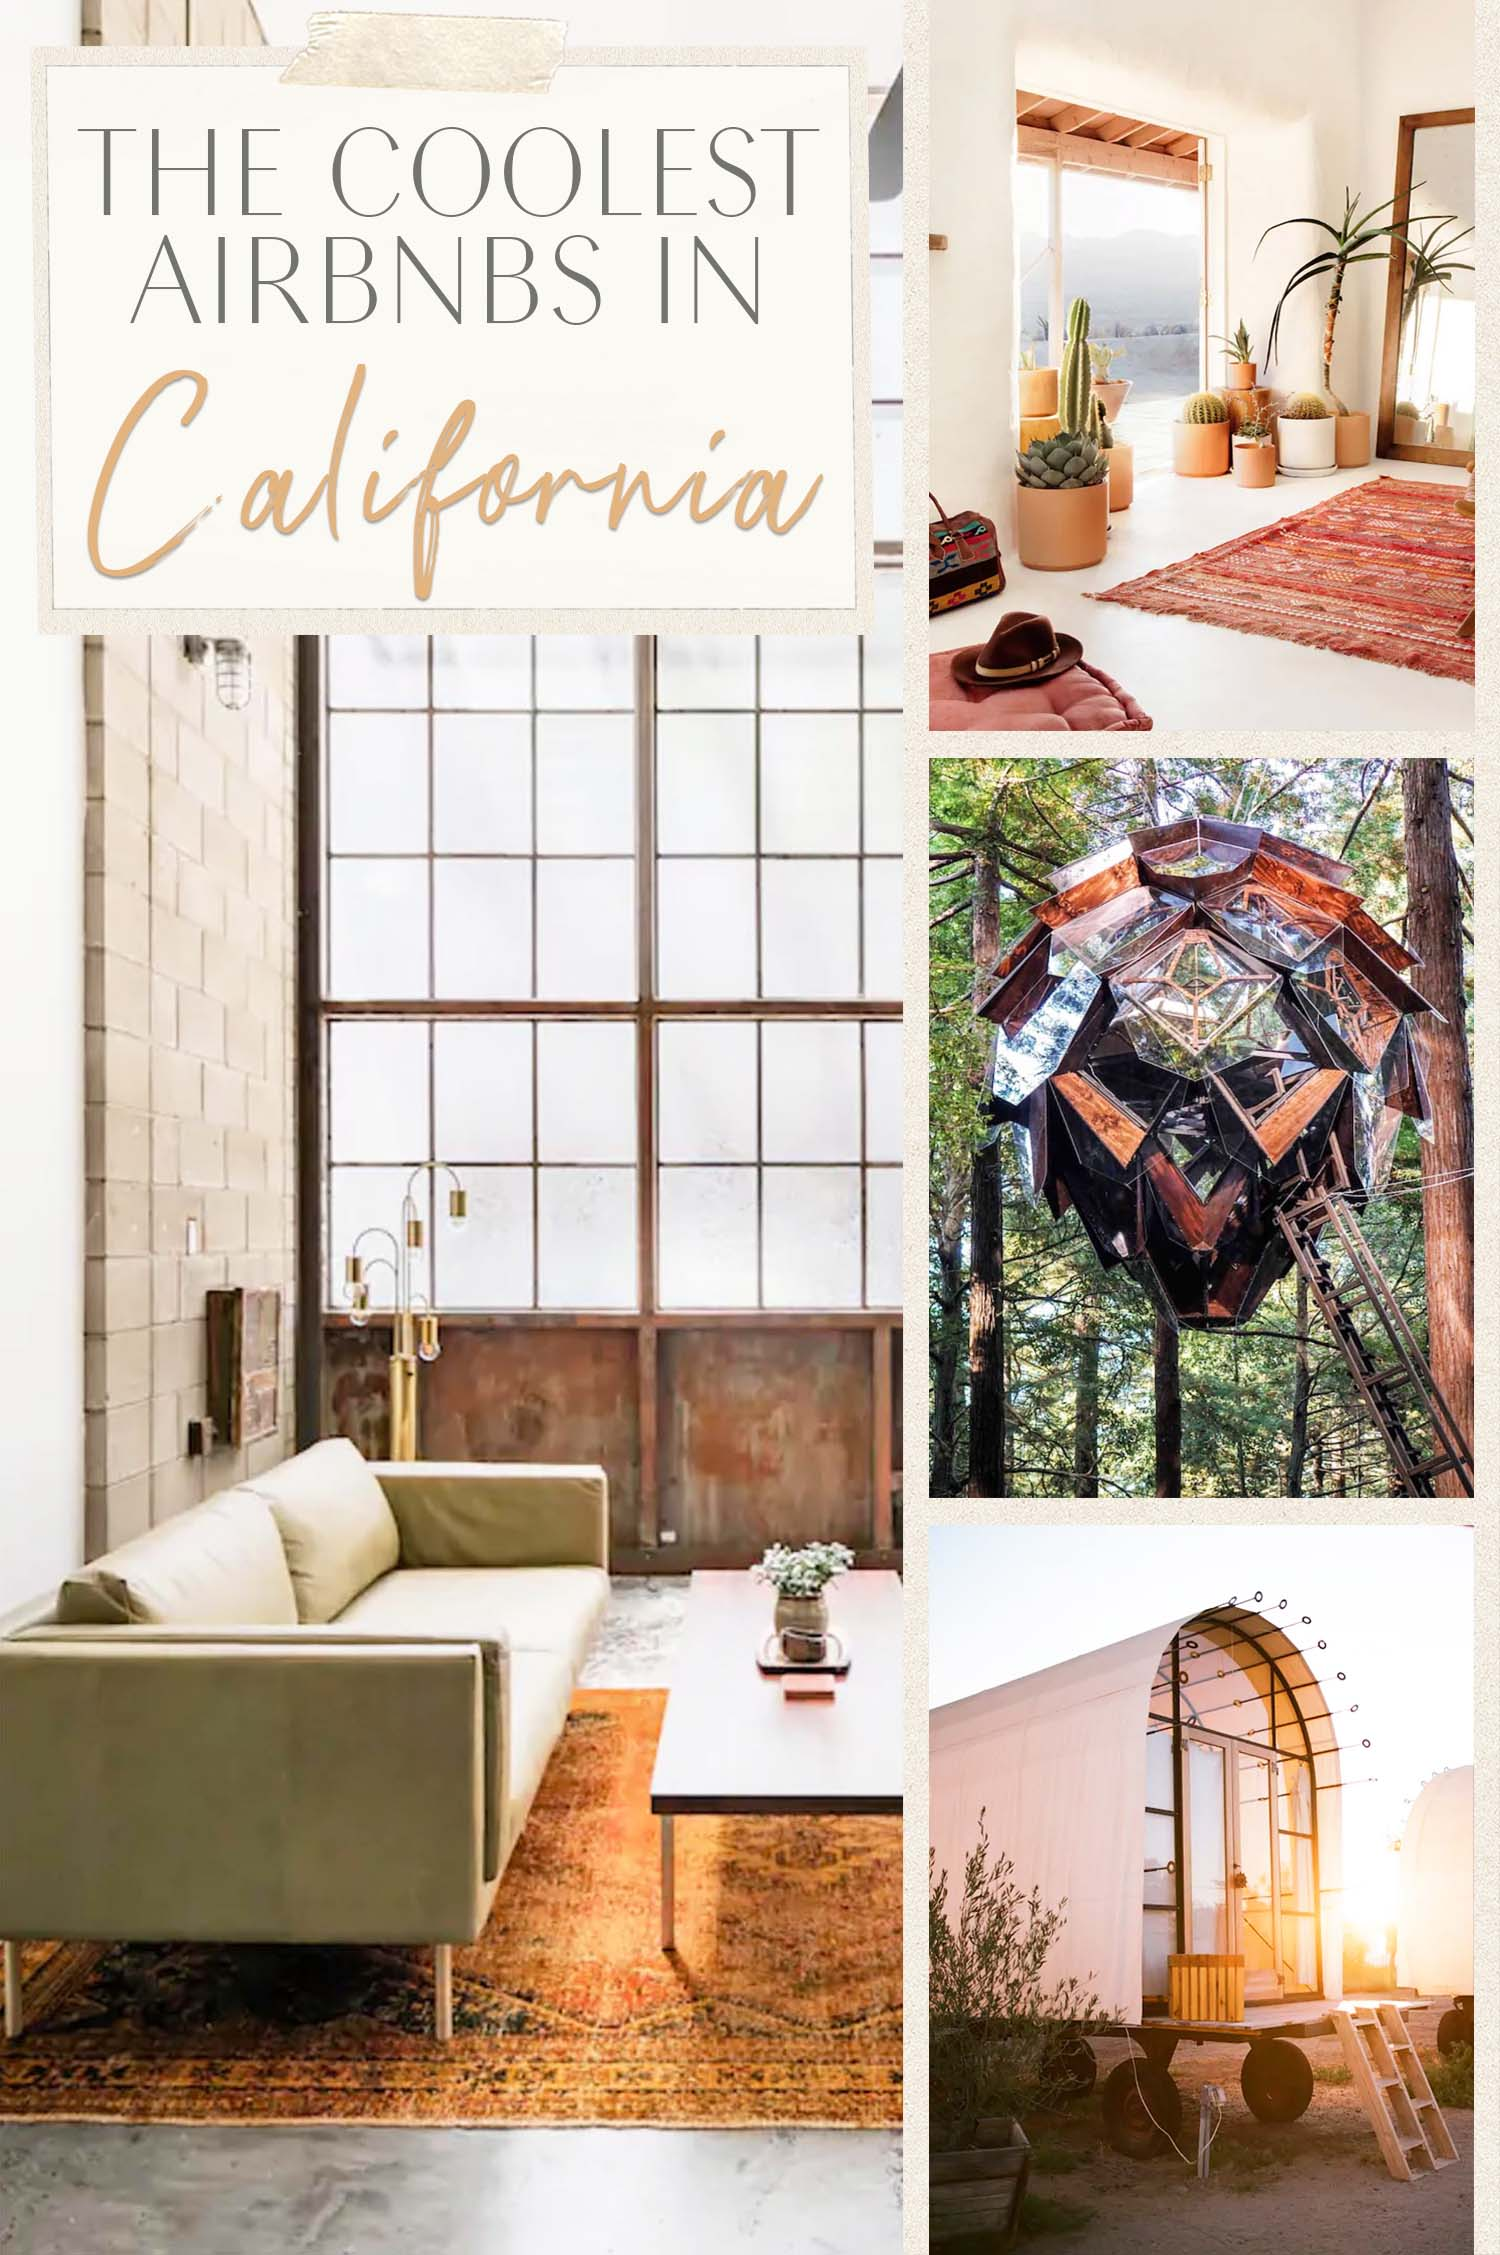 Coolest Airbnbs in California